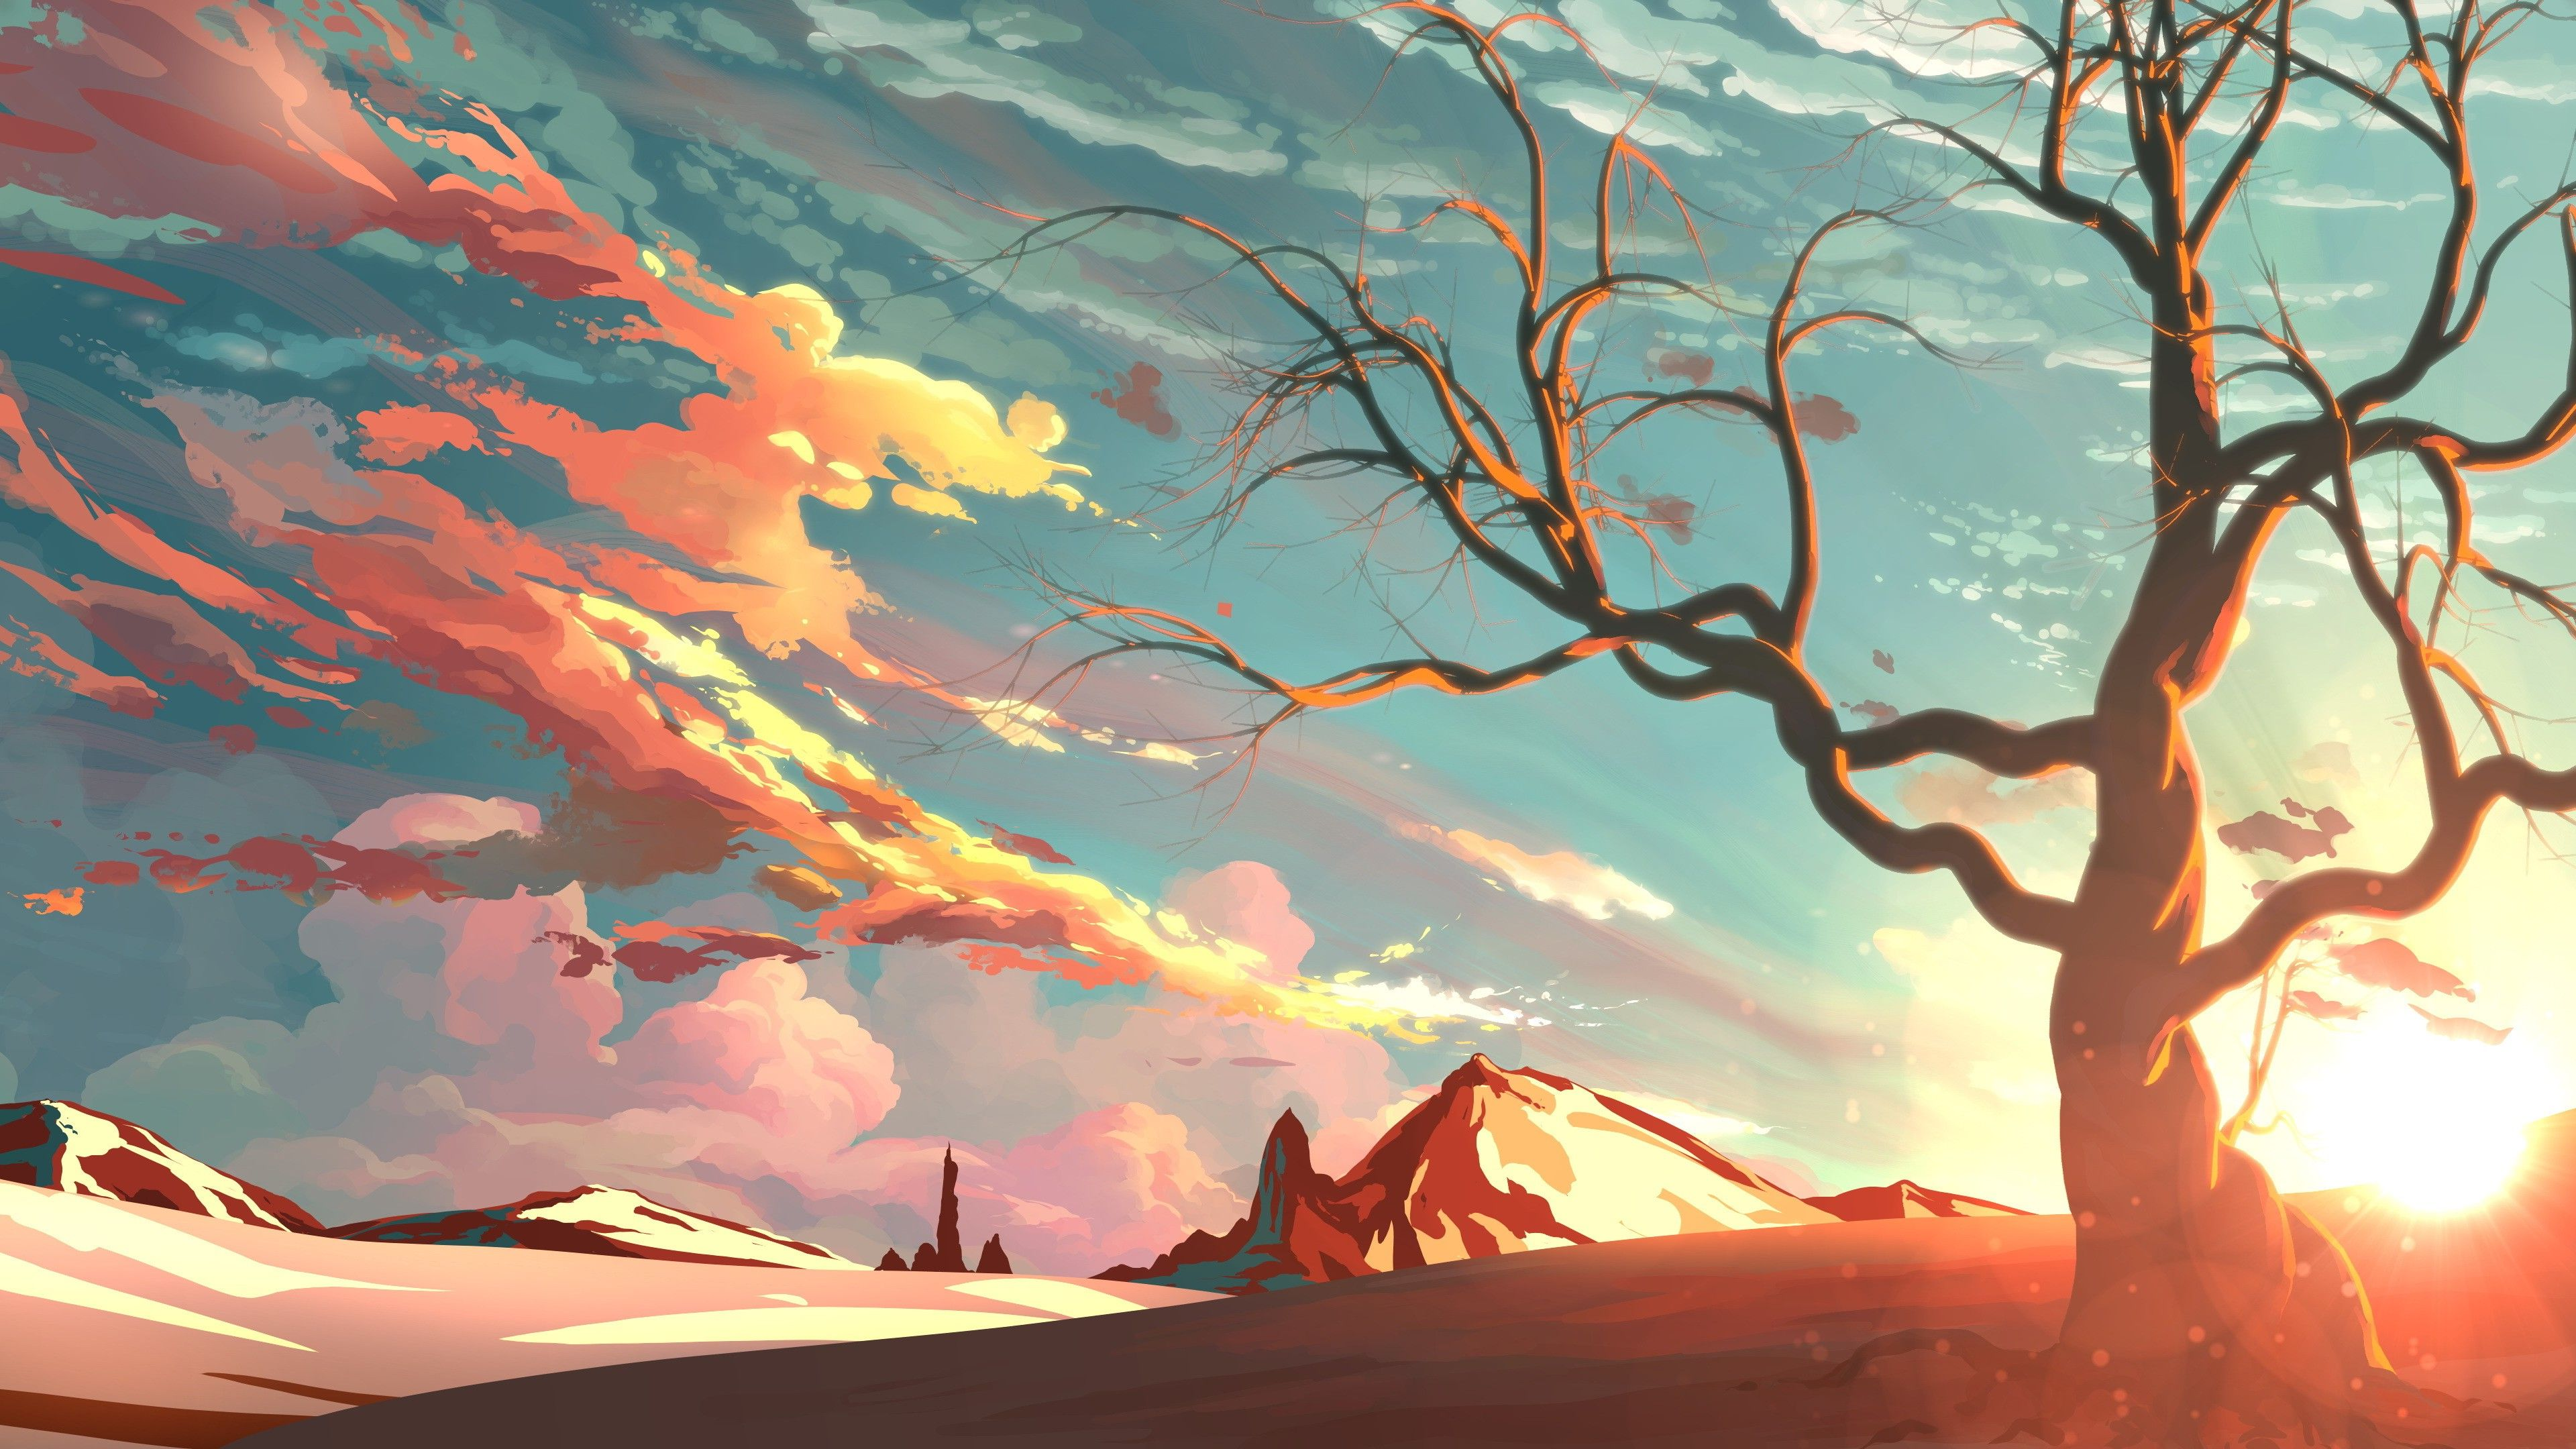 Artwork Digital Art Landscape Valley Sunset Wallpapers Hd Sunset Painting Fantasy Art Landscapes Sunset Art